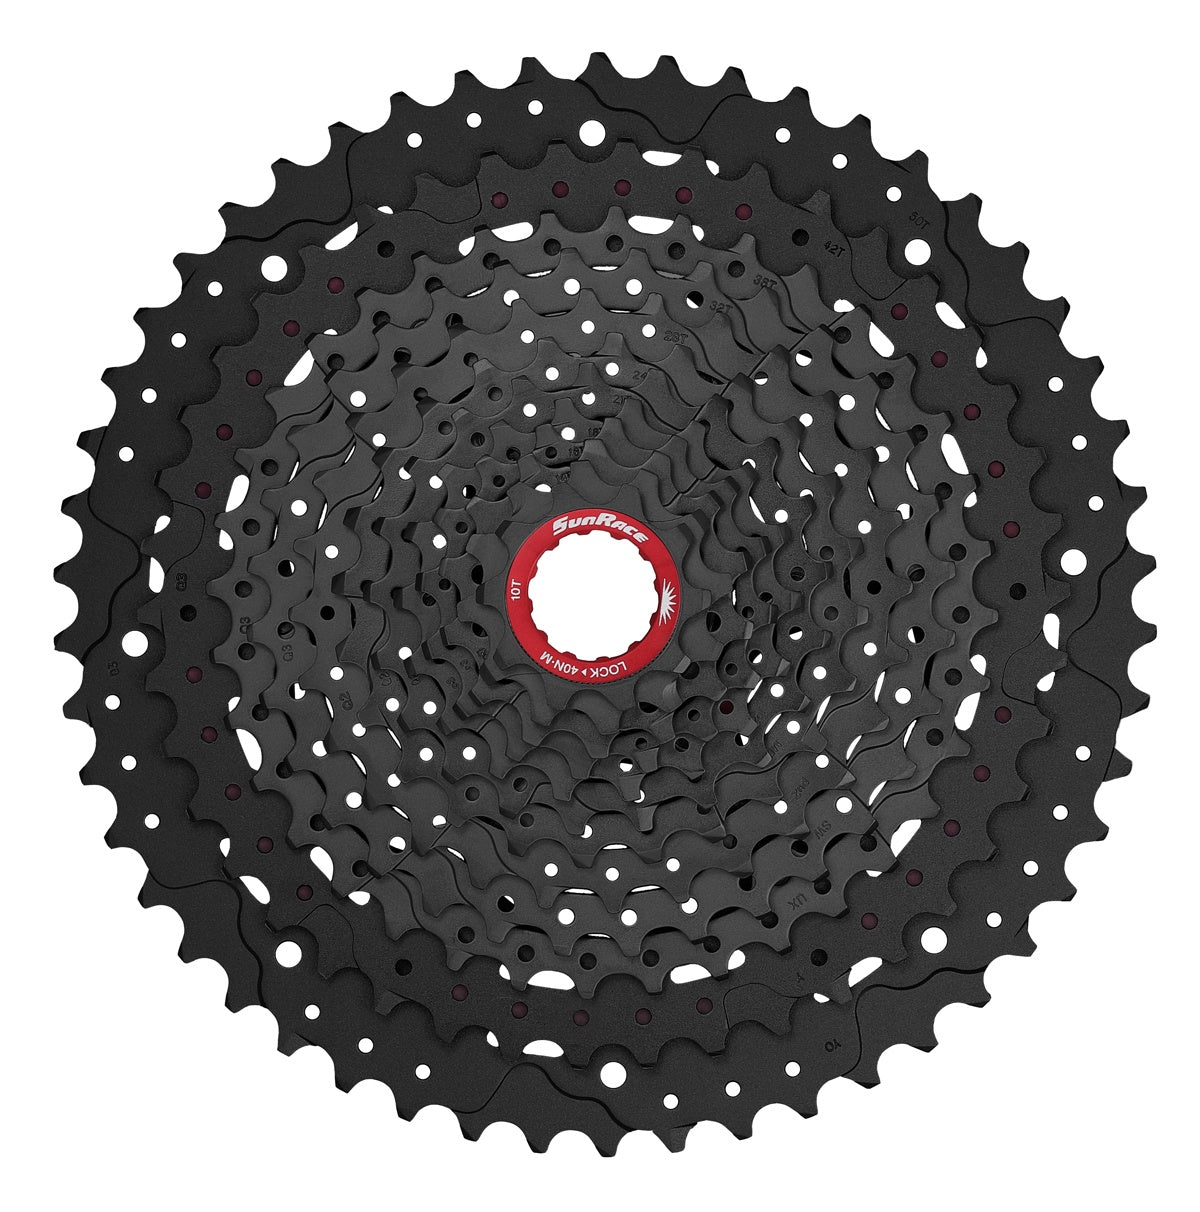 12 Speed XD Cassette 10-50